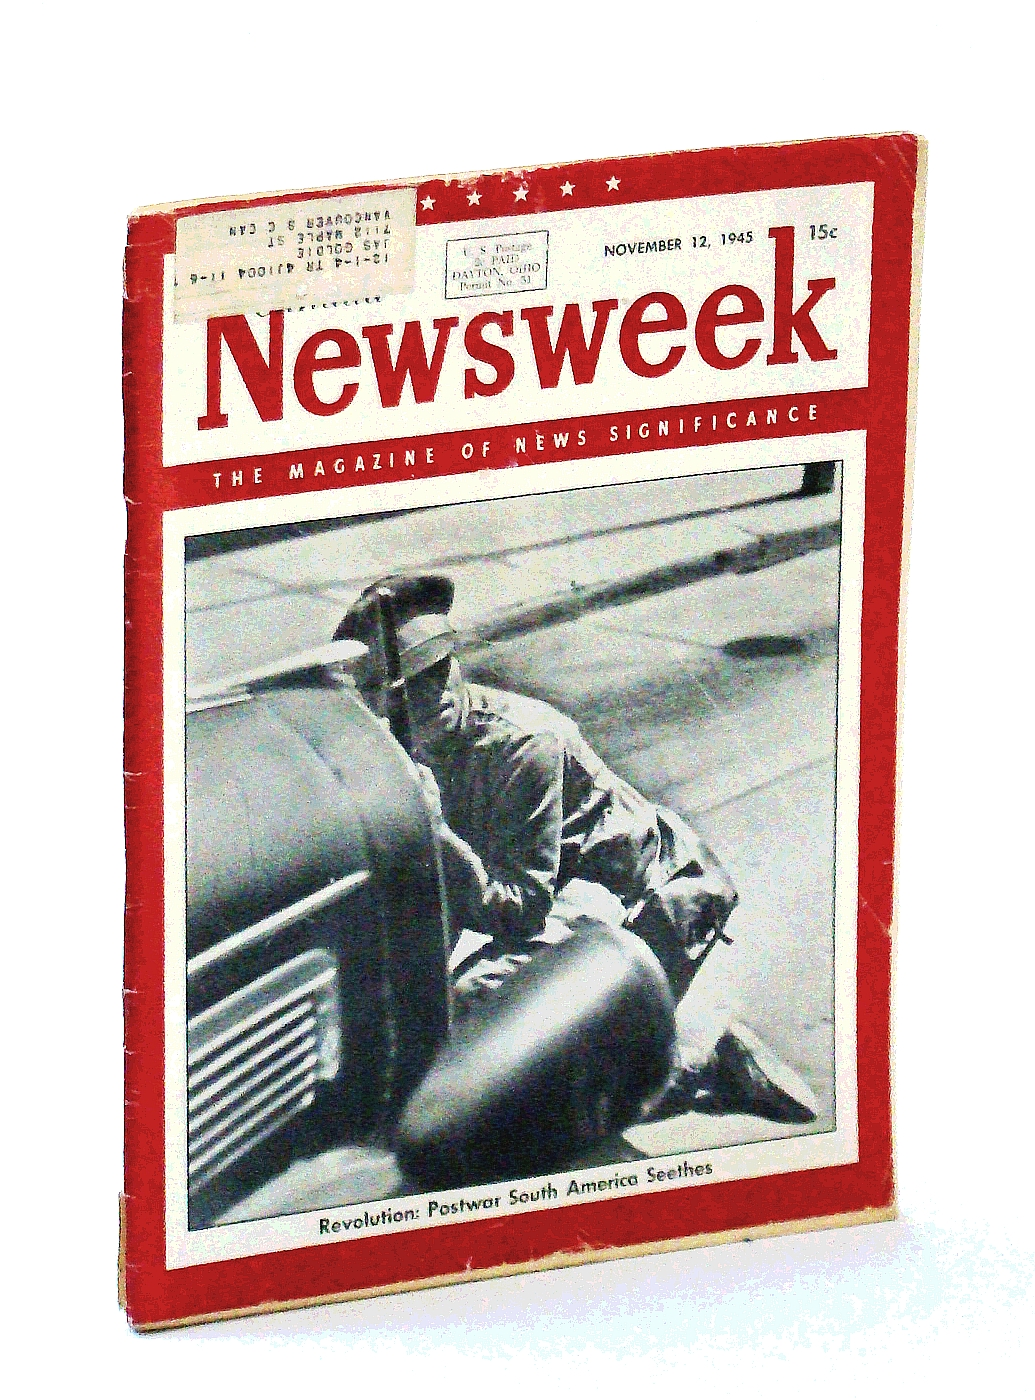 Image for Newsweek Magazine, November 12, 1945 *POSTWAR SOUTH AMERICA SEETHES WITH REVOLUTION*